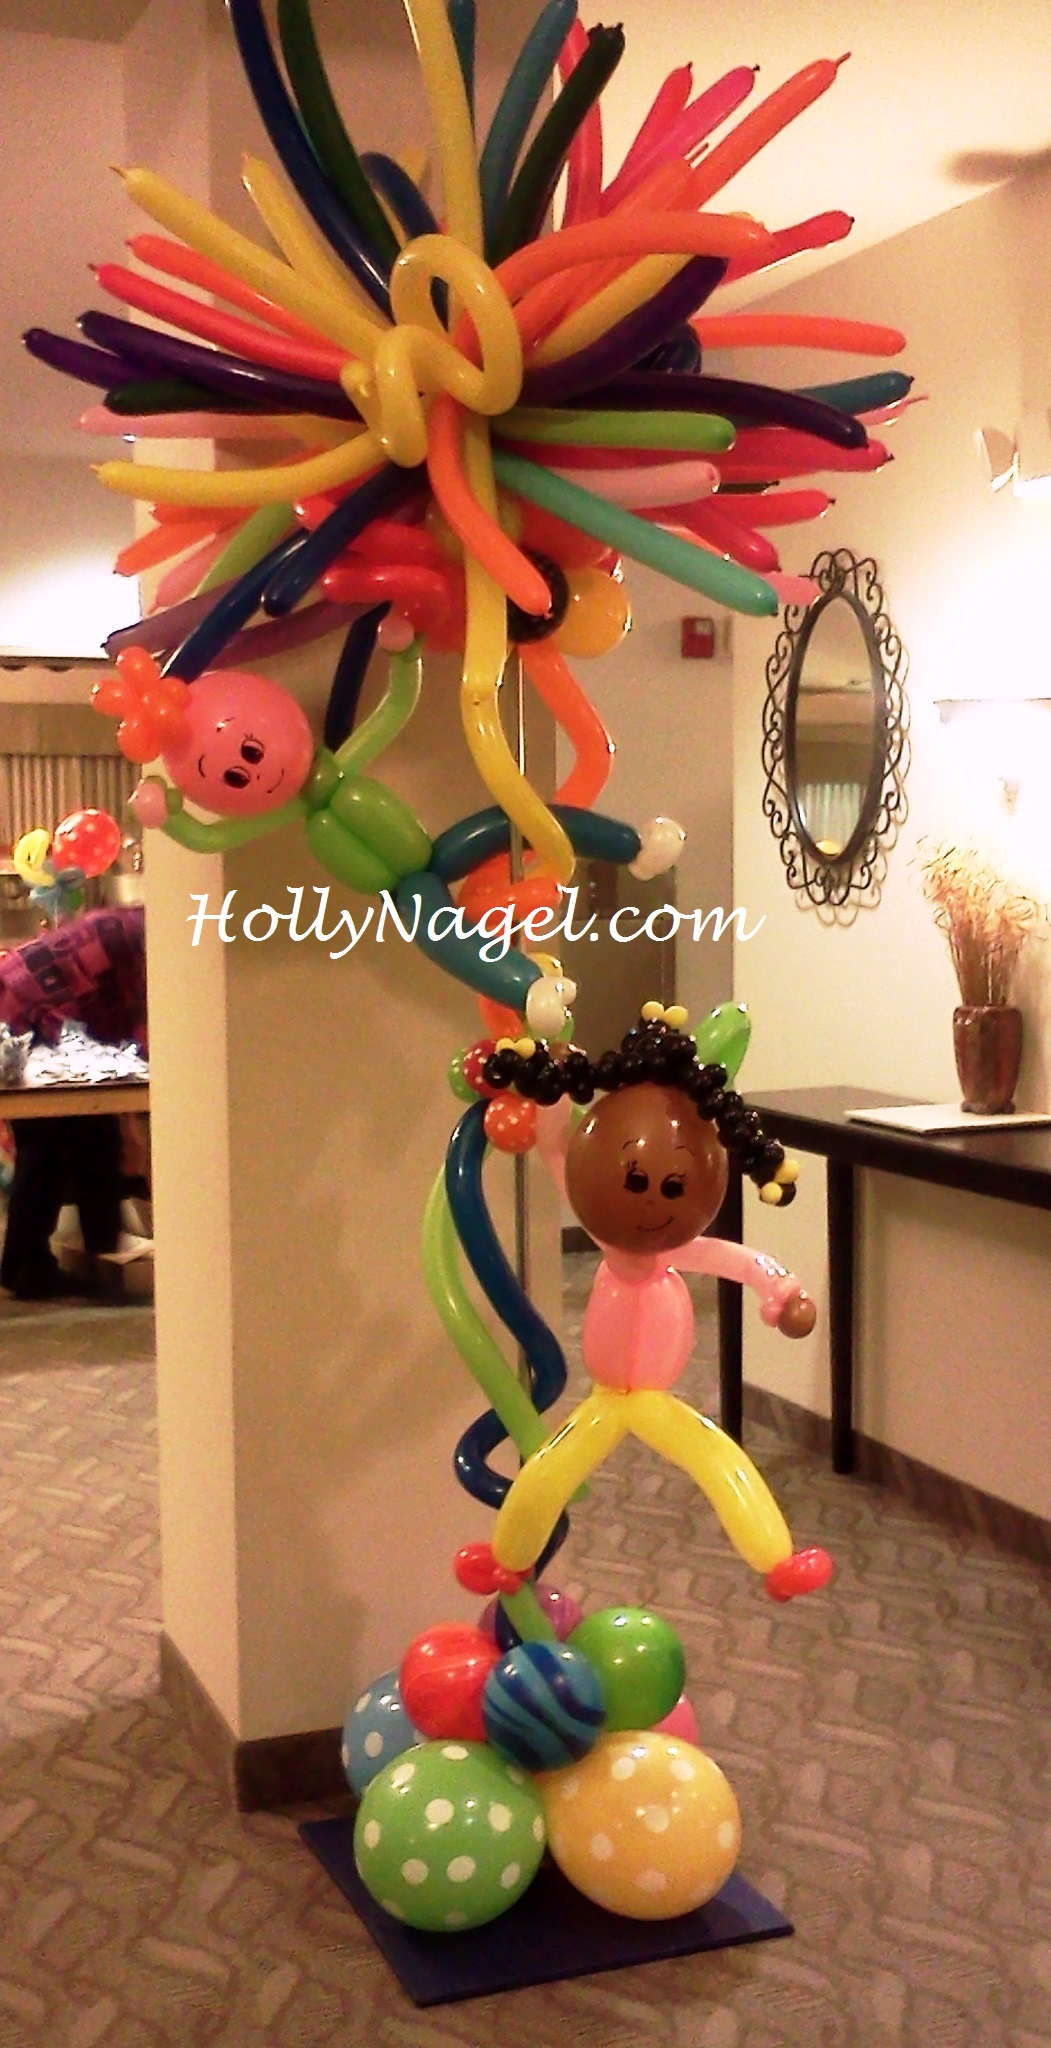 Last minute client request: two of two whimsical #balloonart columns